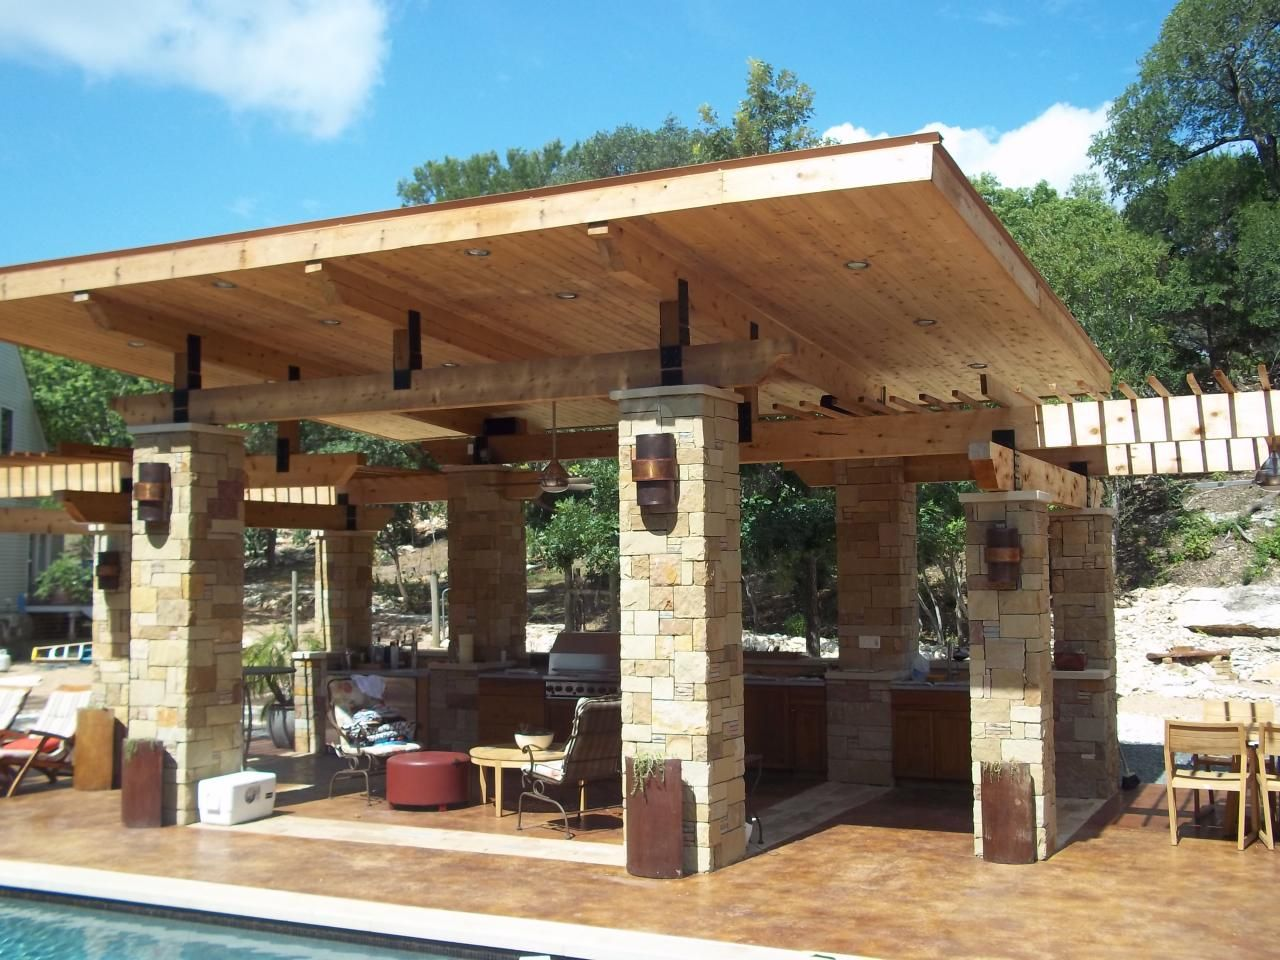 Exterior Terrific Outdoor Patio Design For Lounge Space Backyard Ideas Cozy Wooden Covered Patio   MyHomeImprovement   pergola  . Outdoor Covered Patio Lighting Ideas. Home Design Ideas